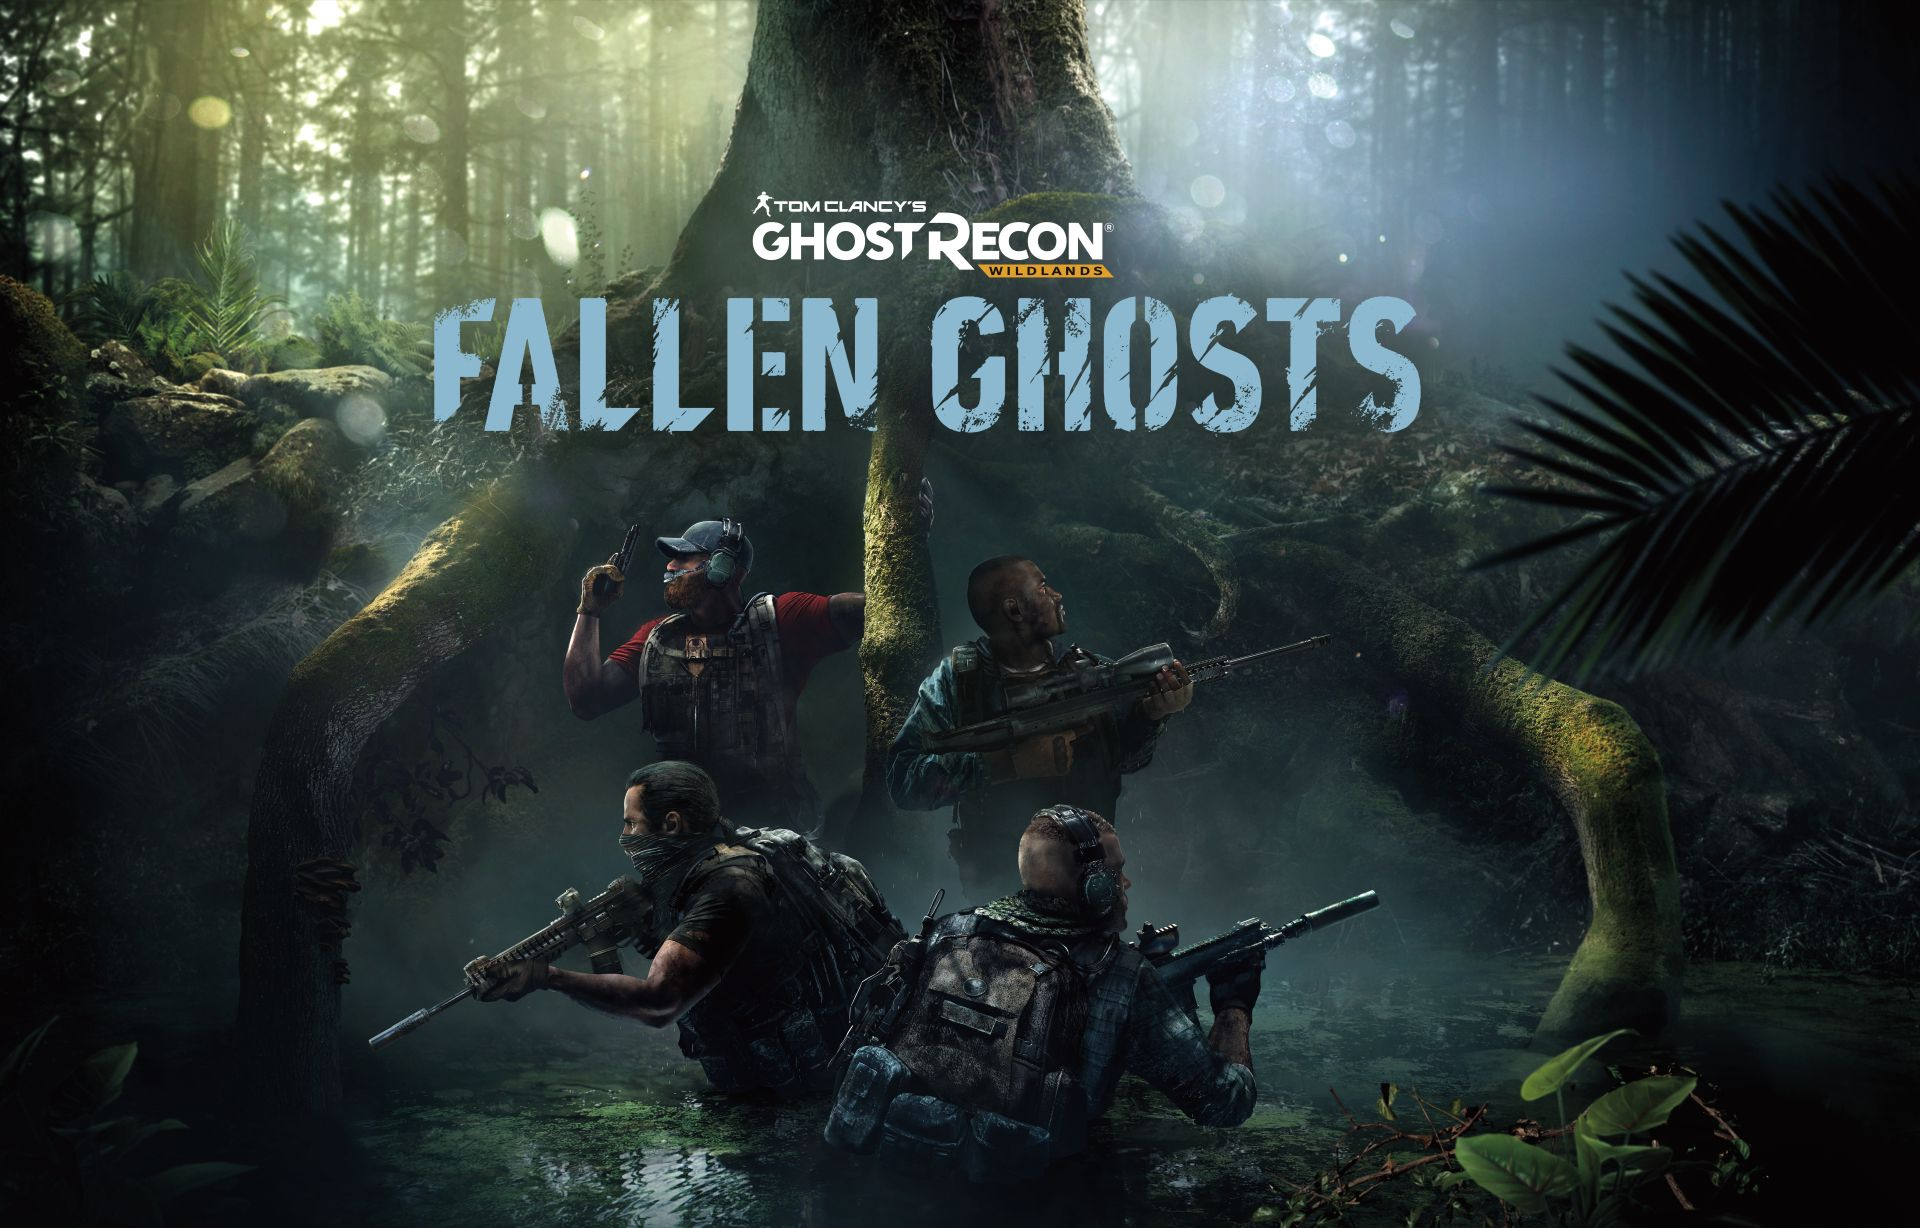 GRW_KEYART_FallenGhosts_05152017_6pm_CEST_1494846598_Small